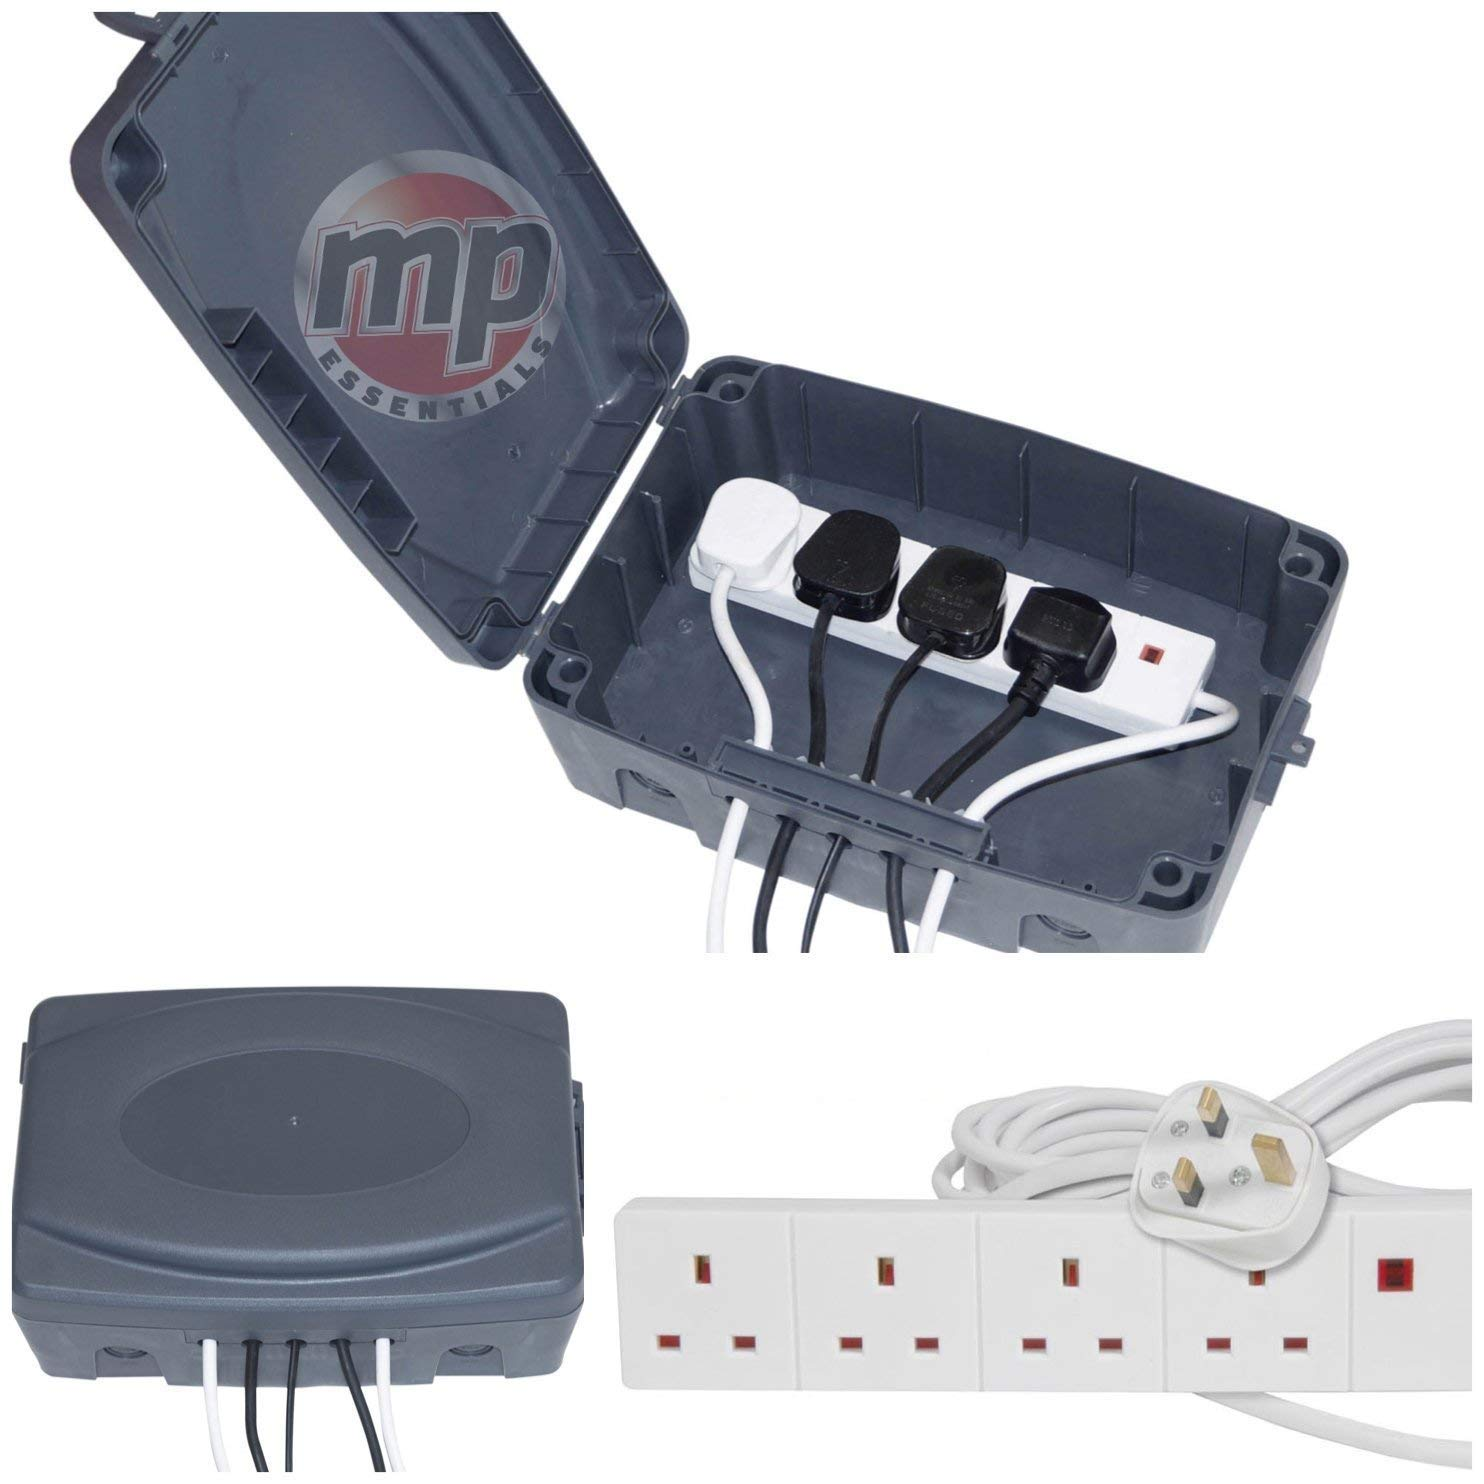 MP Essentials Outdoor Waterproof Masterplug Electrical Connection Box & 4 Gang 5M Extension Lead